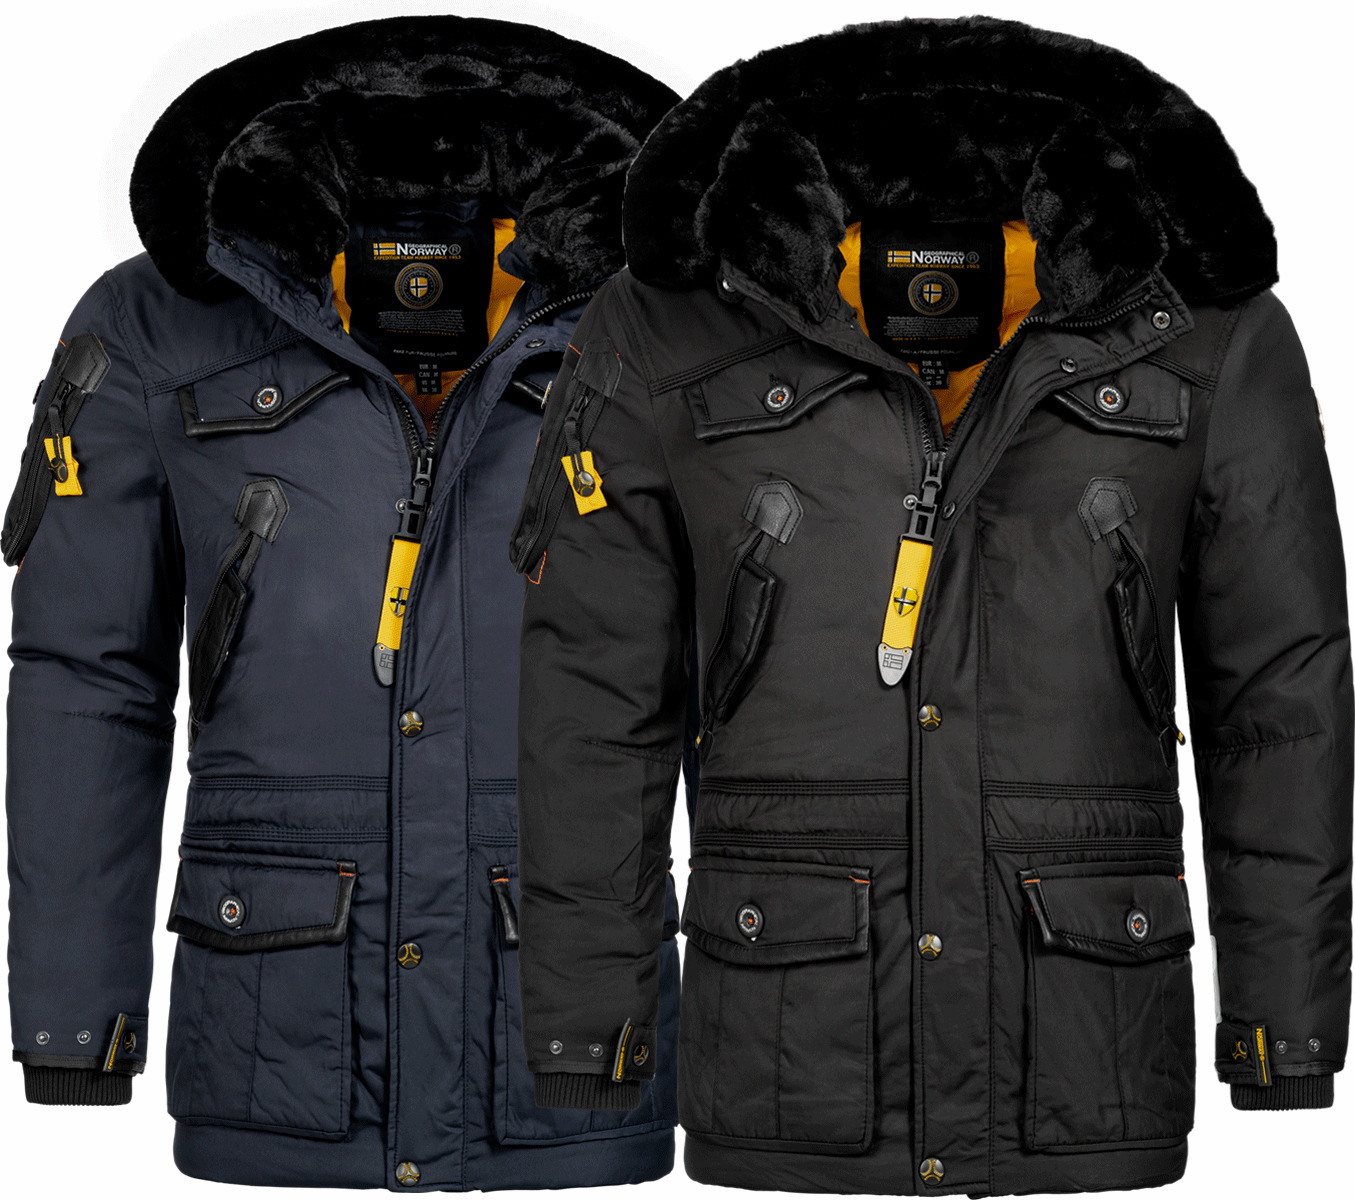 geographical norway luxus warme herren winter jacke parka anorak outdoor mantel eur 149 90. Black Bedroom Furniture Sets. Home Design Ideas